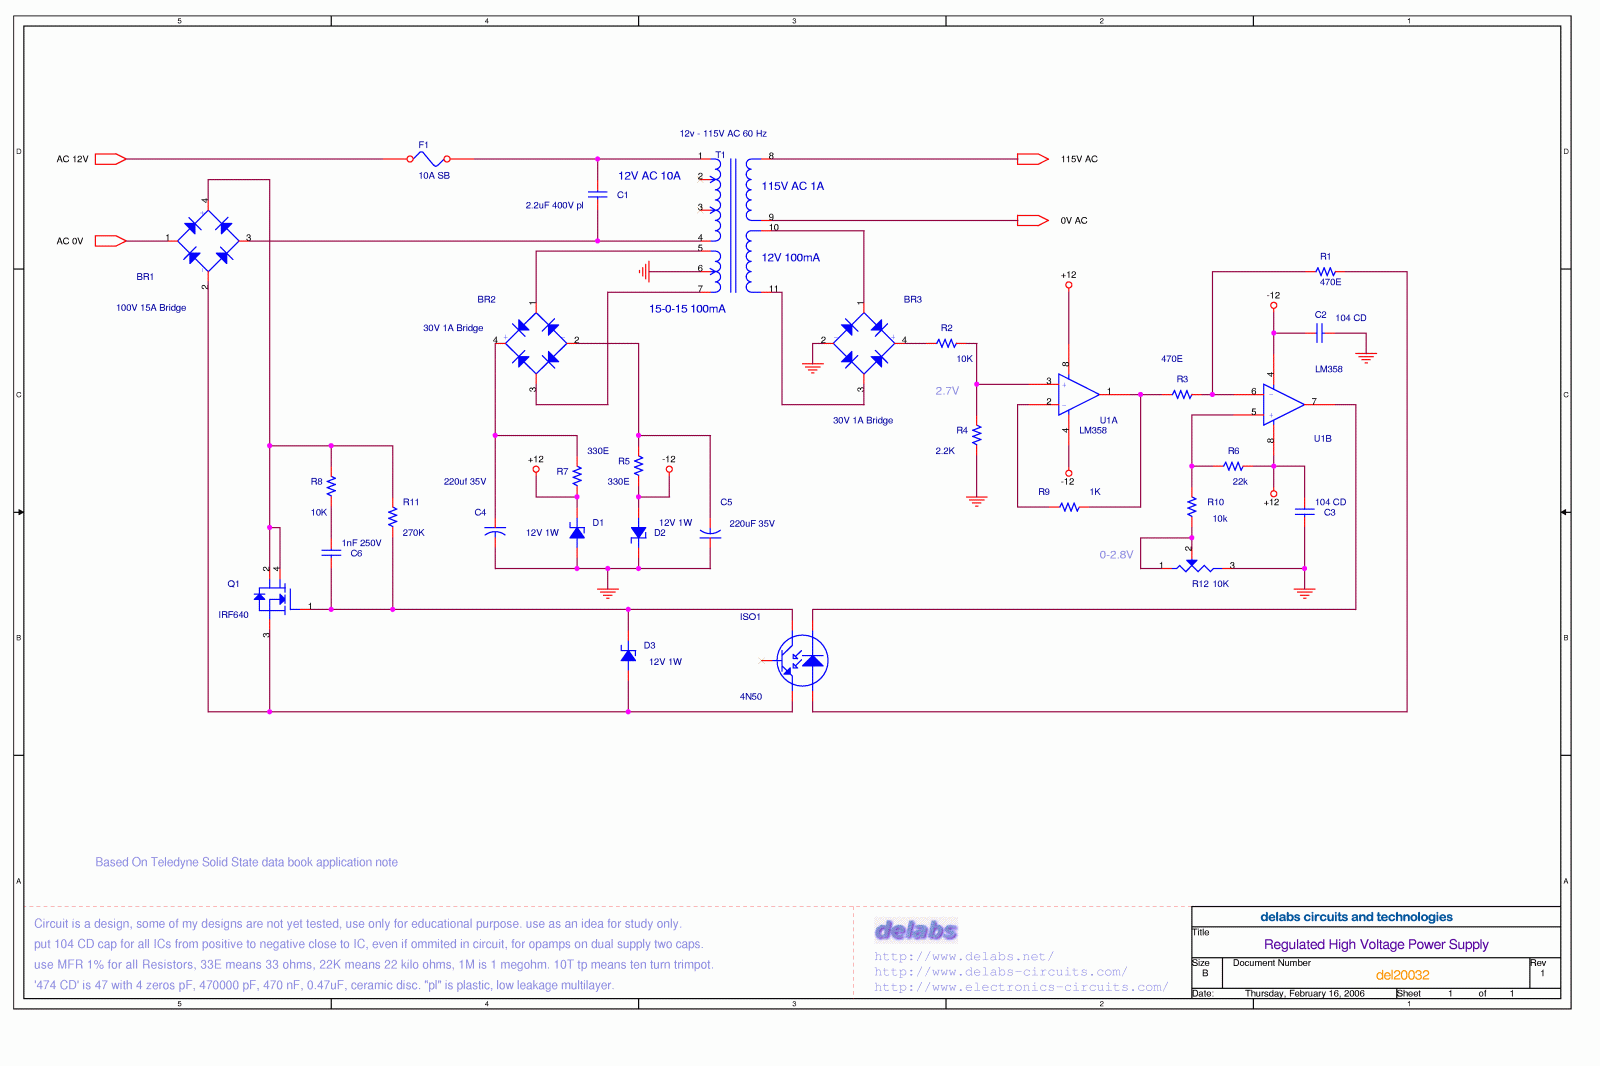 high voltage circuit diagram sql server memory architecture regulated power supply electronics